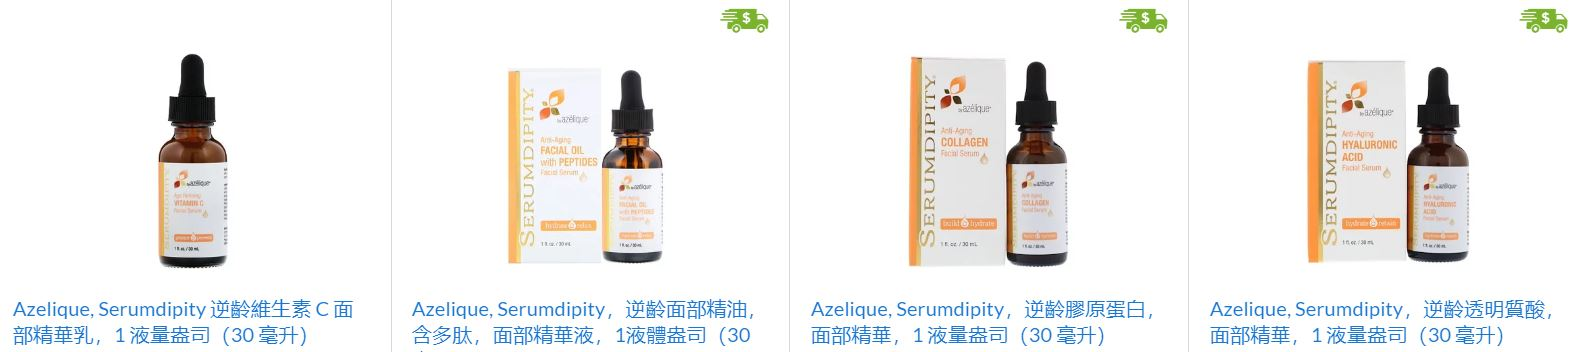 Azelique Skin Treatments & Serums